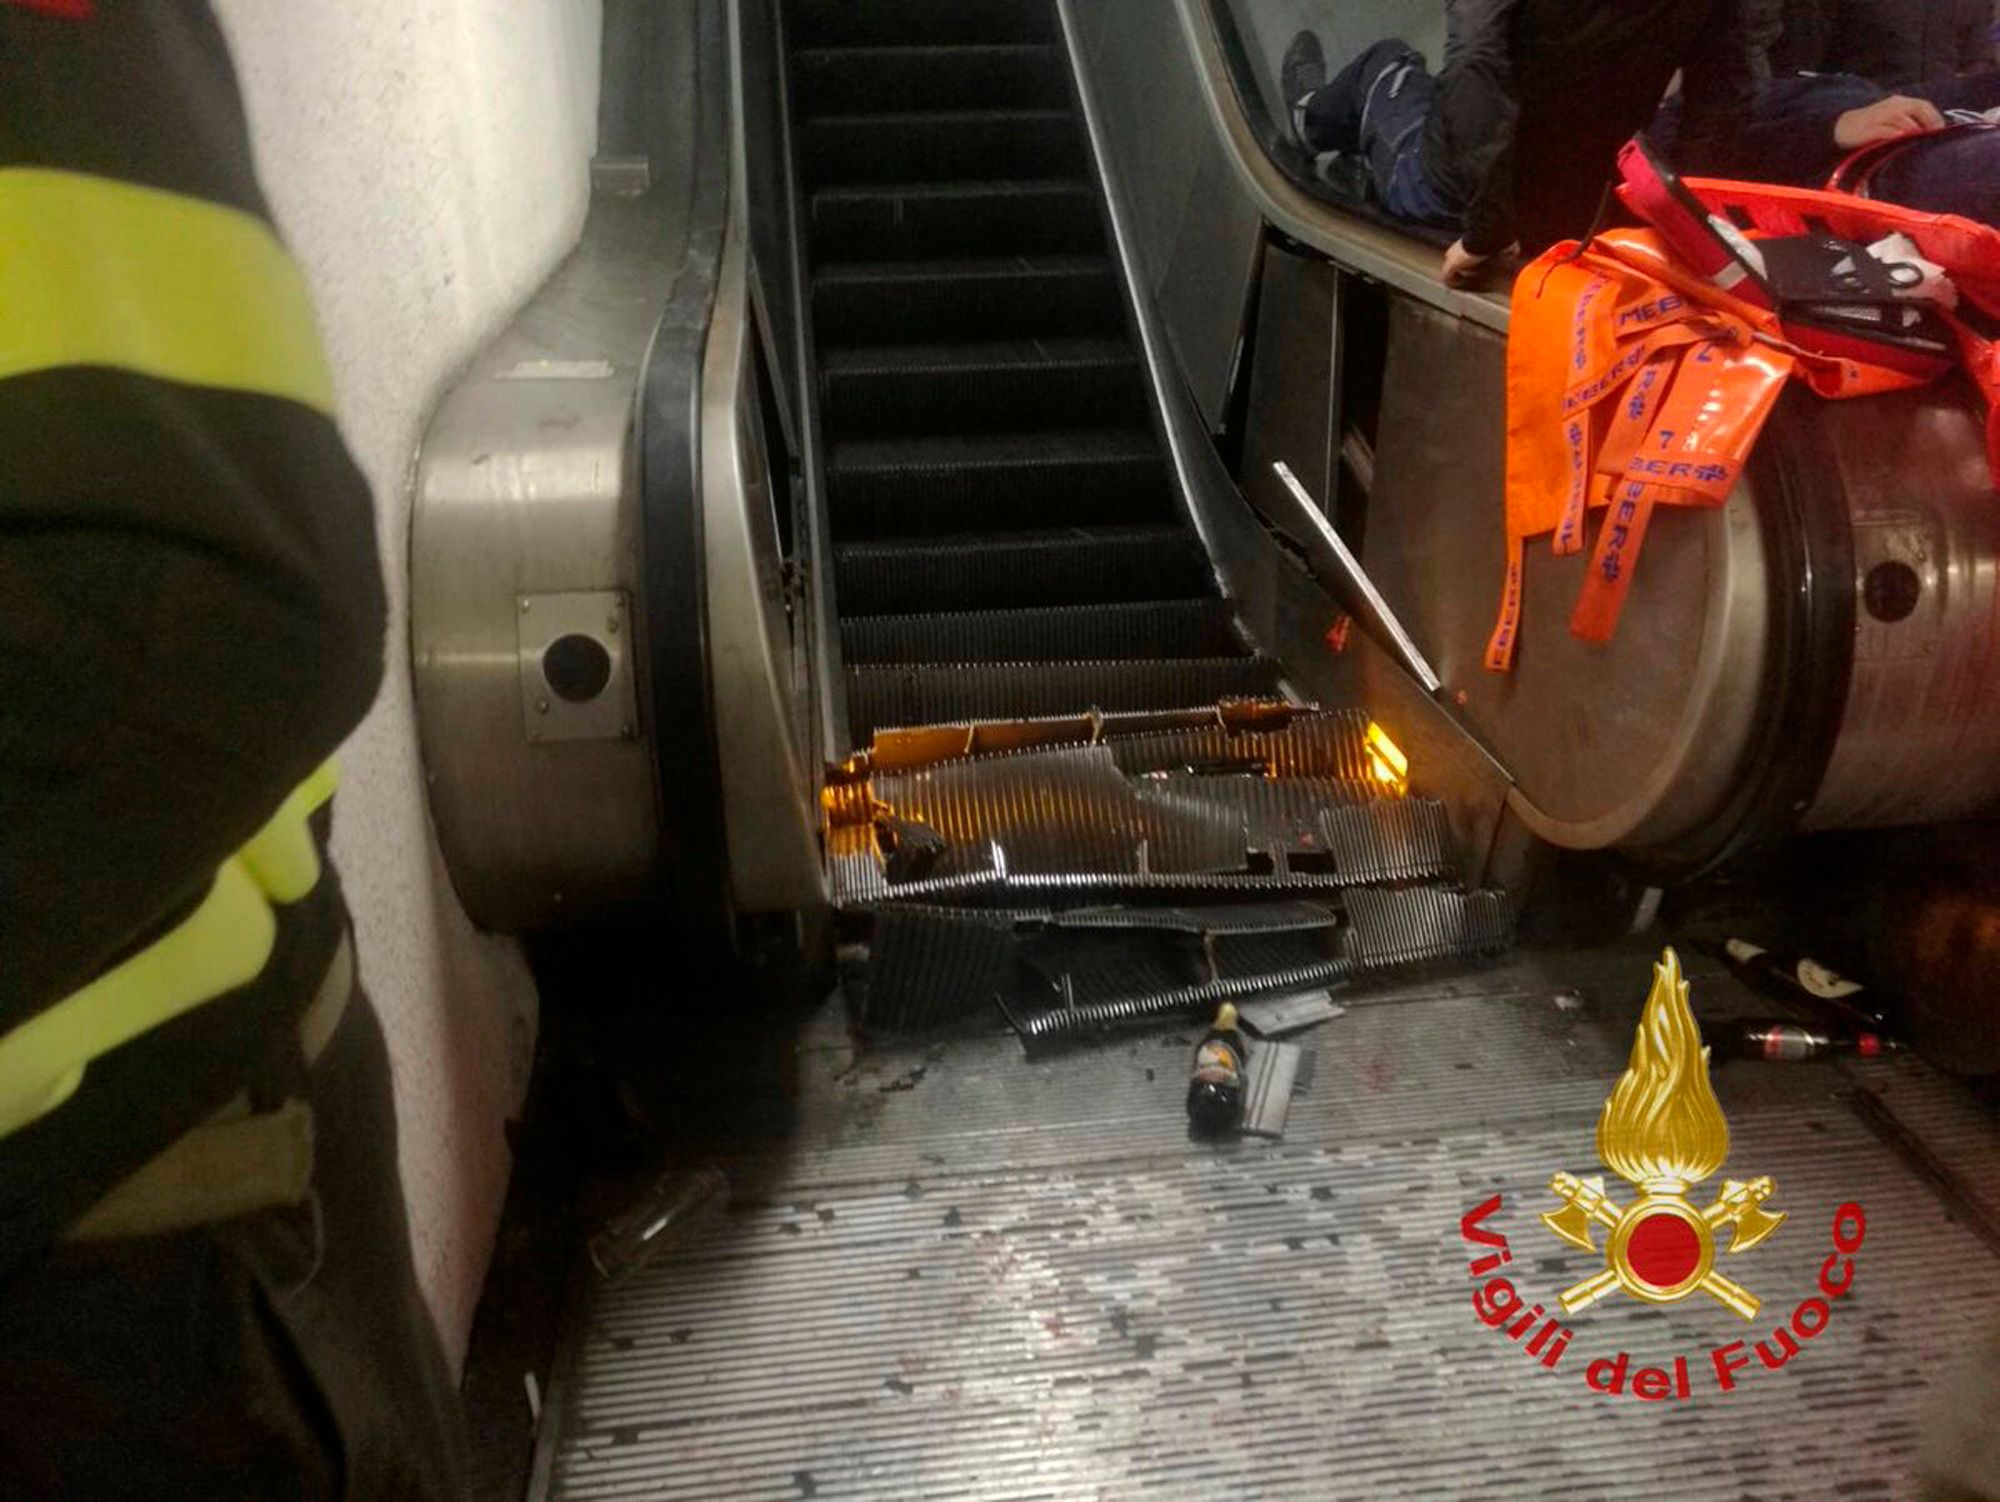 At least 20 Russian football fans hurt in Rome metro escalator accident